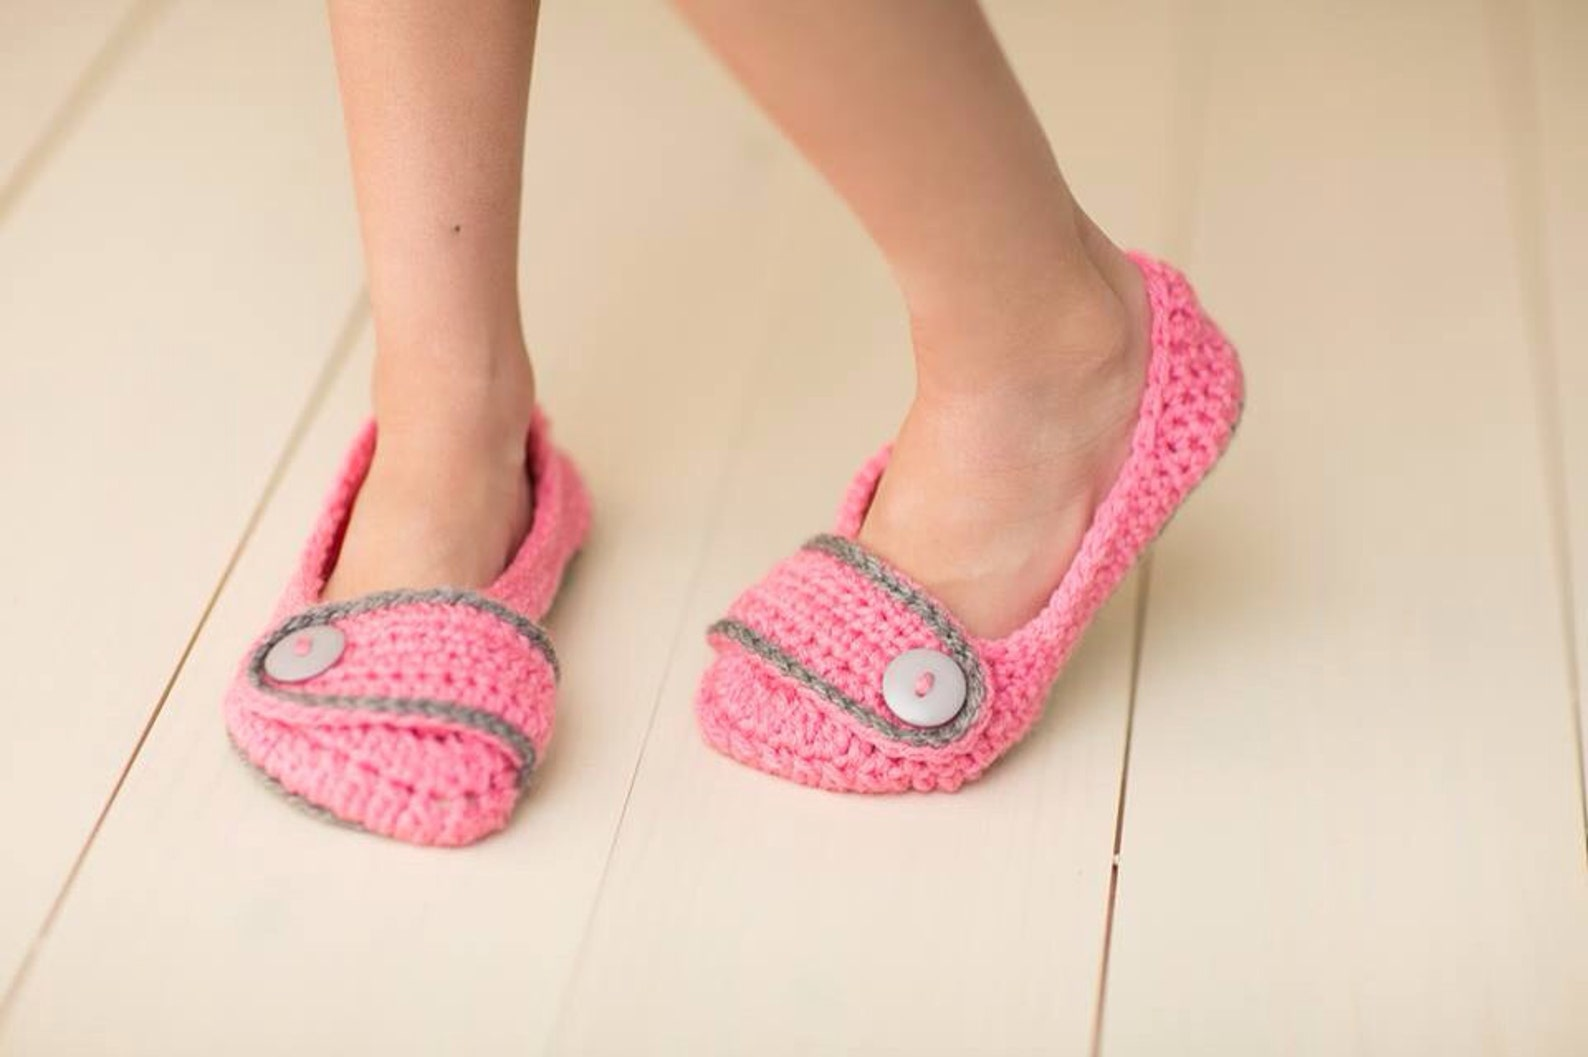 crochet girls ballet flat house slippers sizes 10-2 custom made to order any color